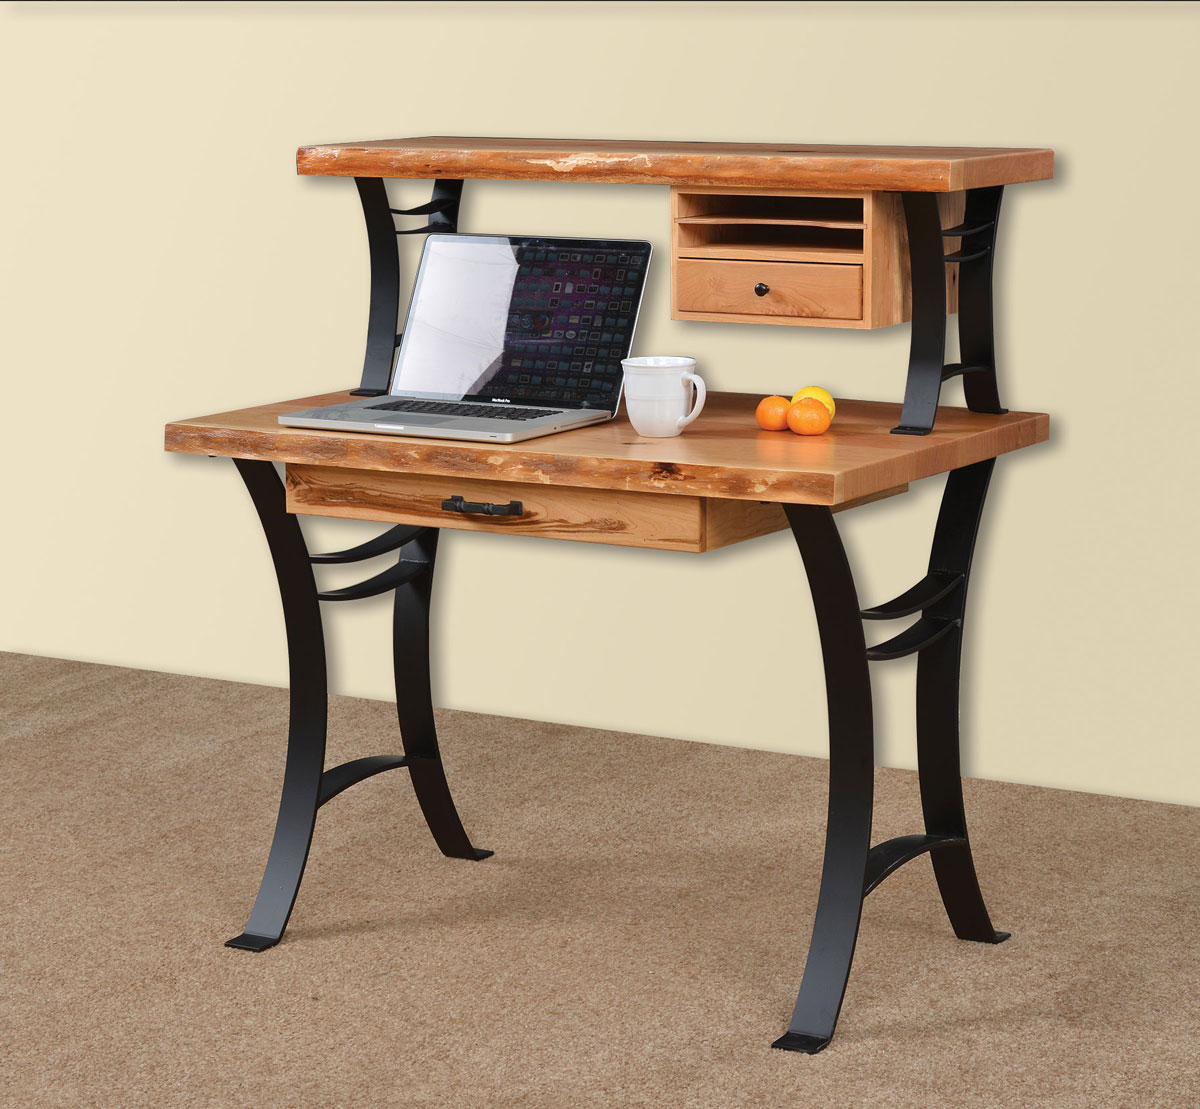 42 inch Euro Writing Desk